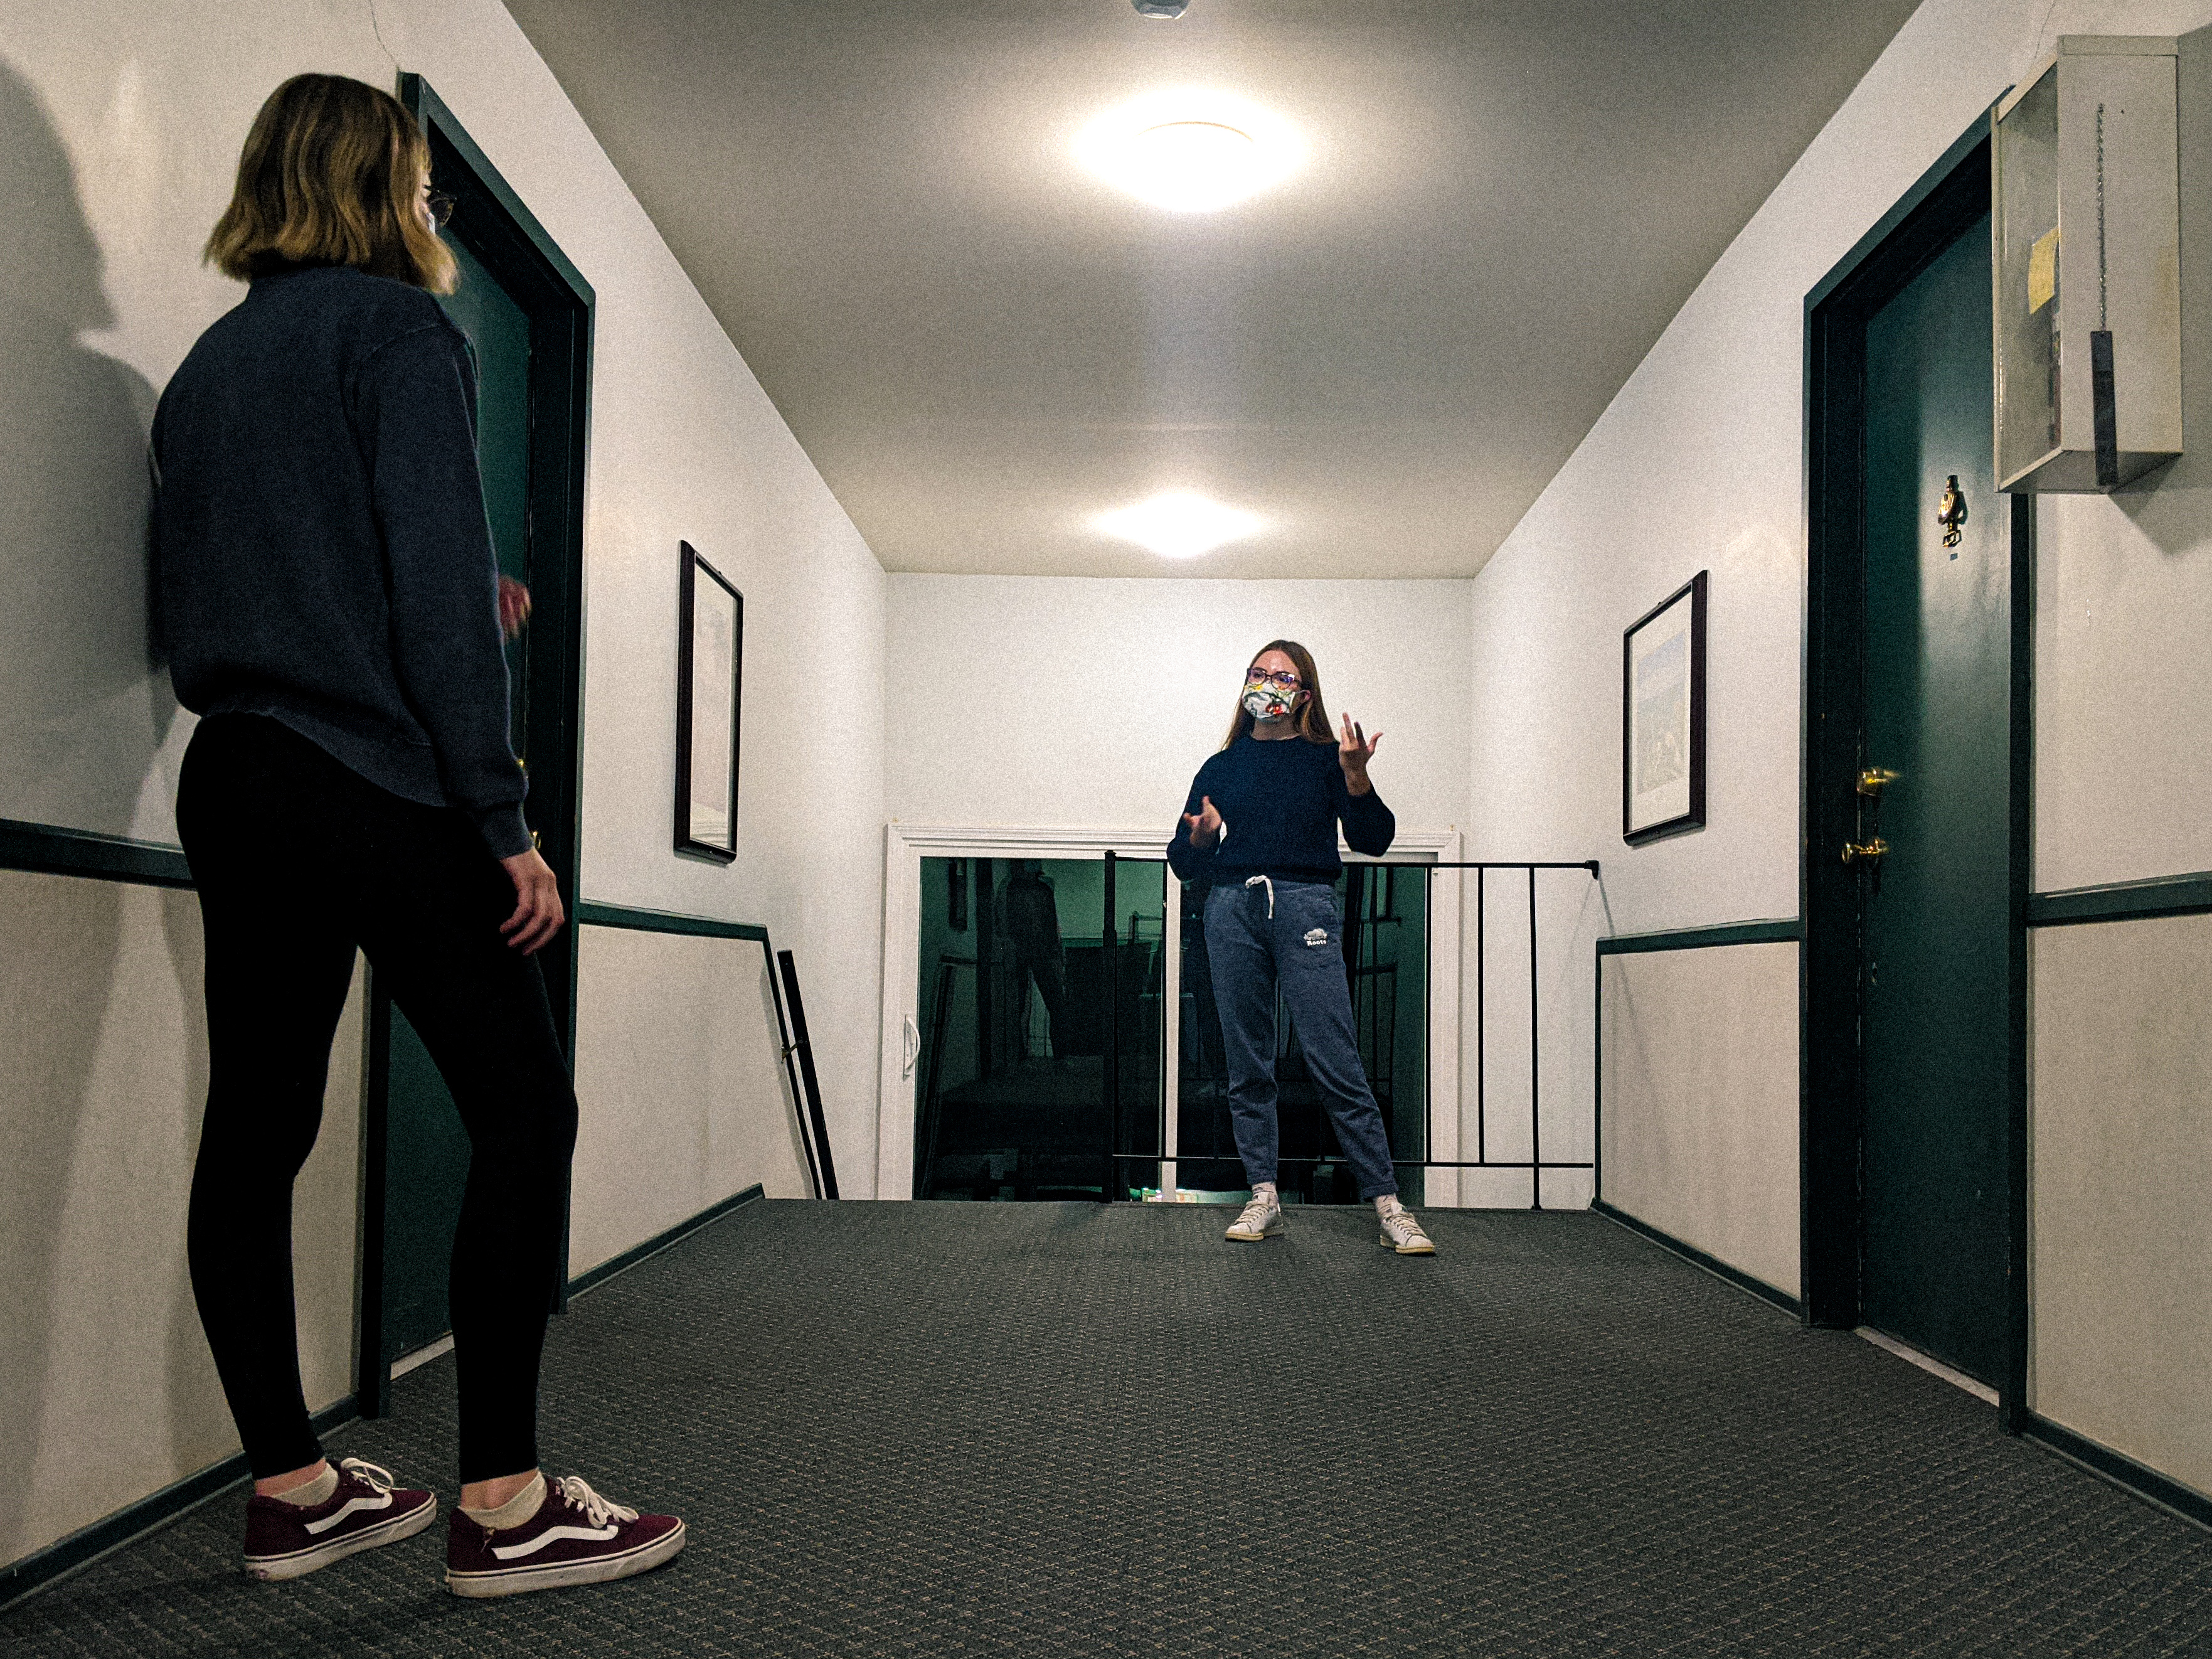 Two young women in a hallway, facing each other from at least six feet distance, wearing face masks.